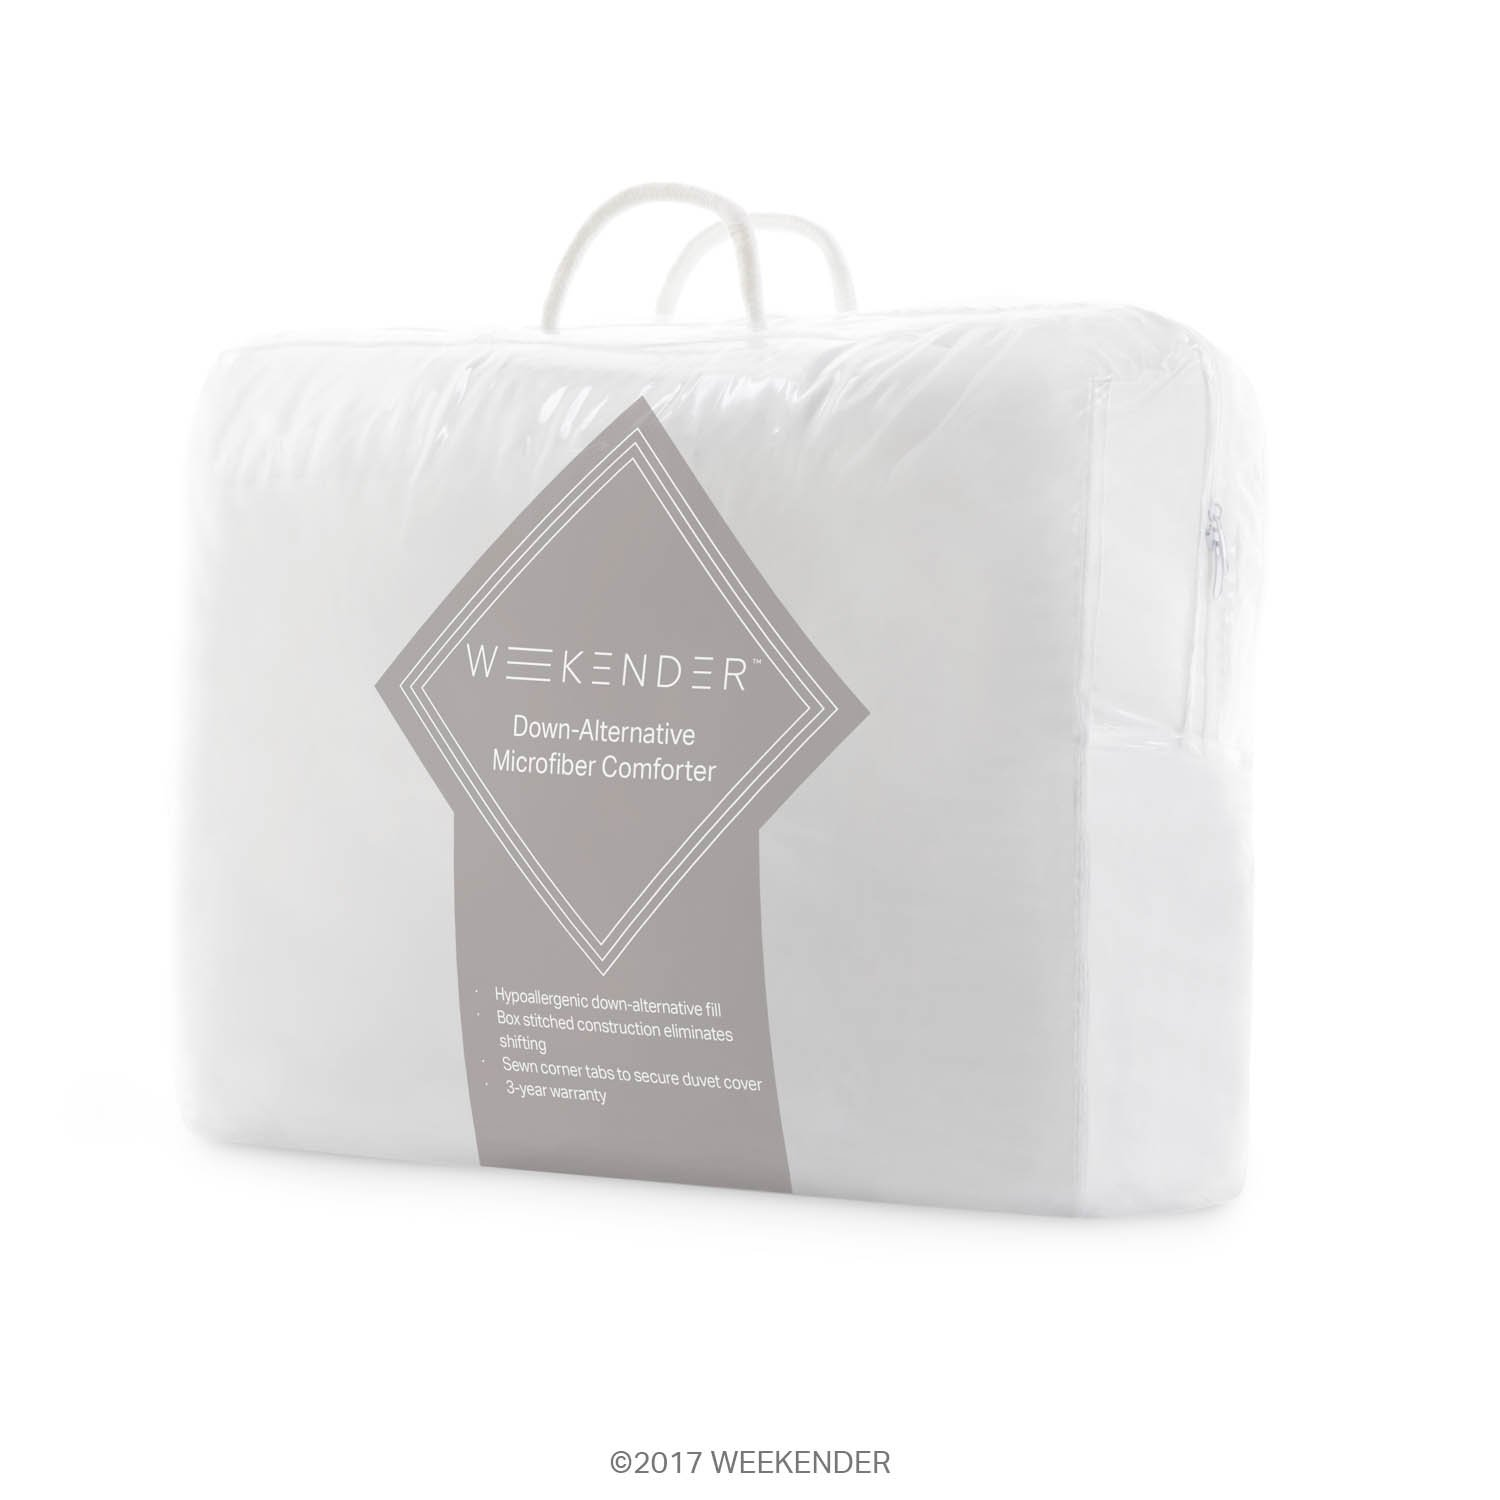 Great for All Seasons Corner Duvet Tabs WEEKENDER Quilted Down Alternative Hotel-Style Comforter Queen Classic White WK70QQMICO Hypoallergenic Use as Duvet Insert or Stand-Alone Comforter